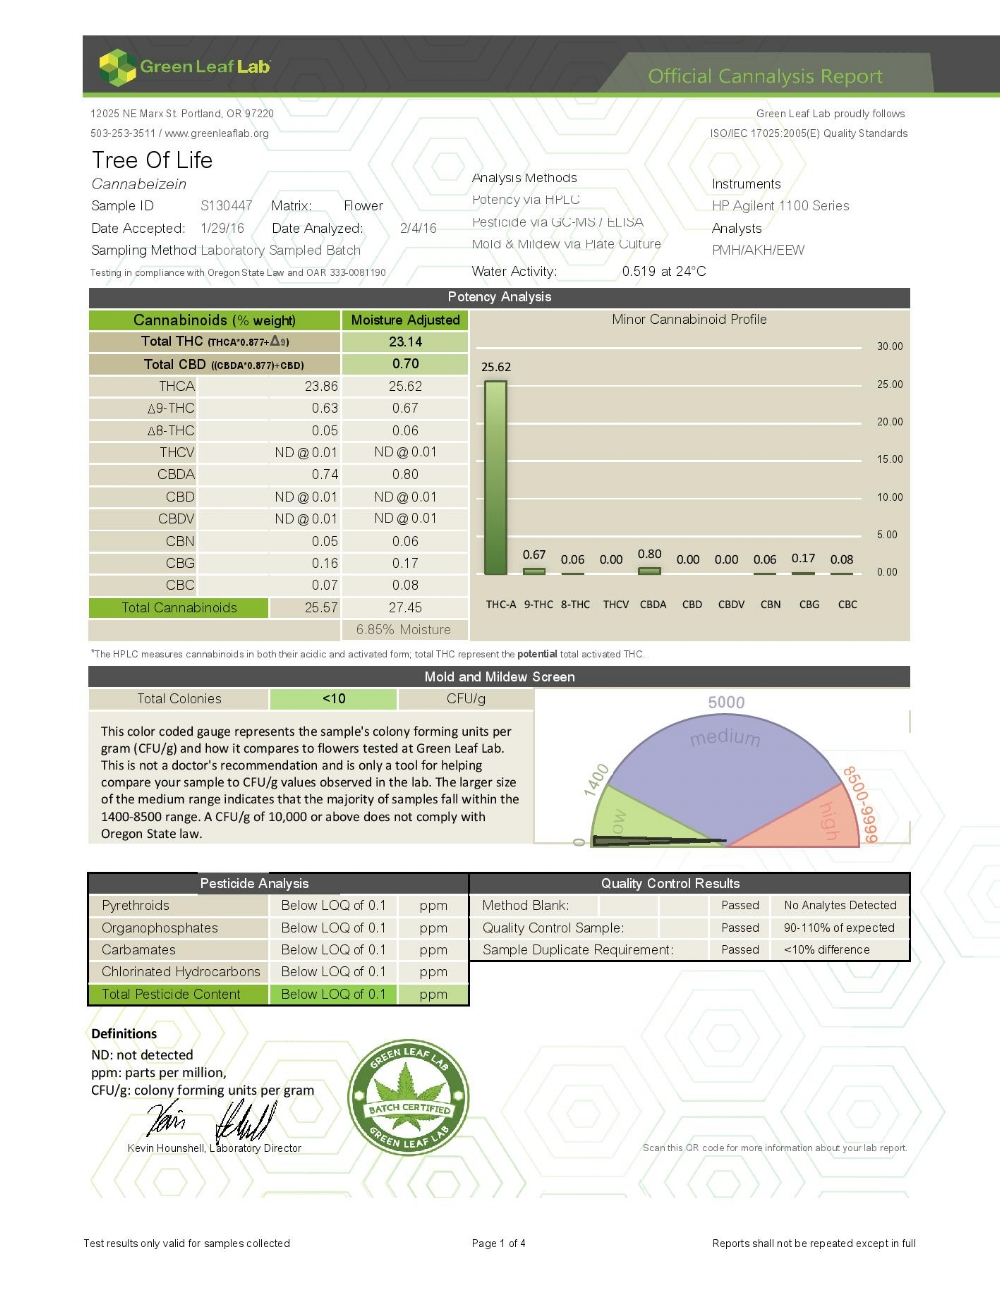 Tree of Life Official Cannalysis Report